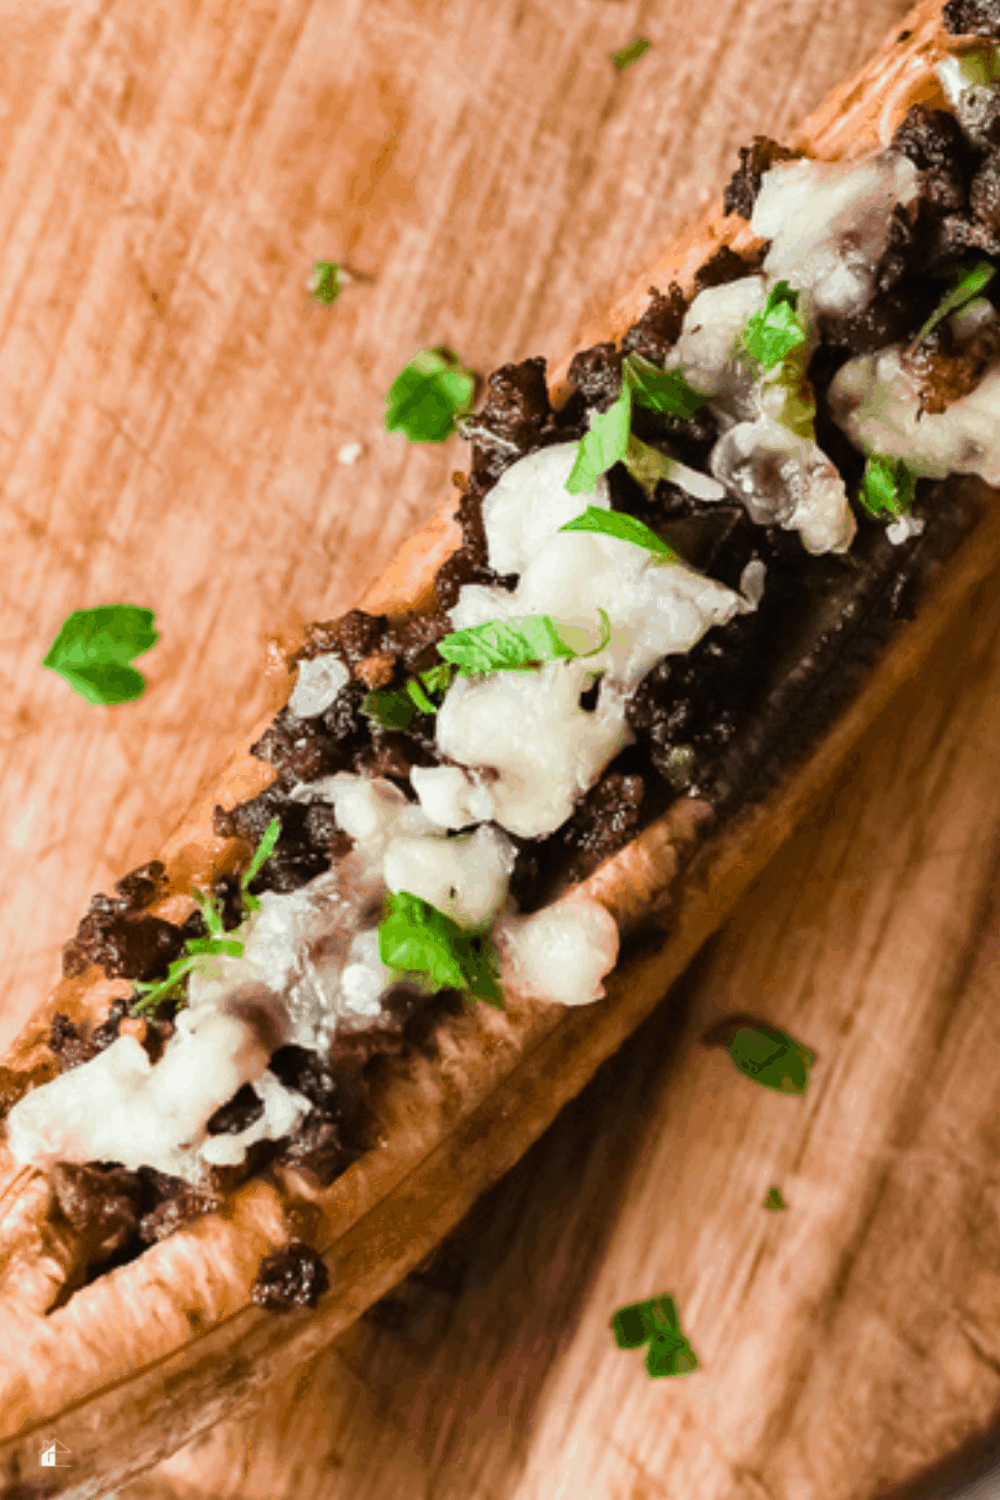 Learn how to make this Puerto Rican stuffed baked plantains or Canoas De Plátanos Maduros that your family is going to love. #plantain #puertoricanfood #stuffplatanos via @mystayathome